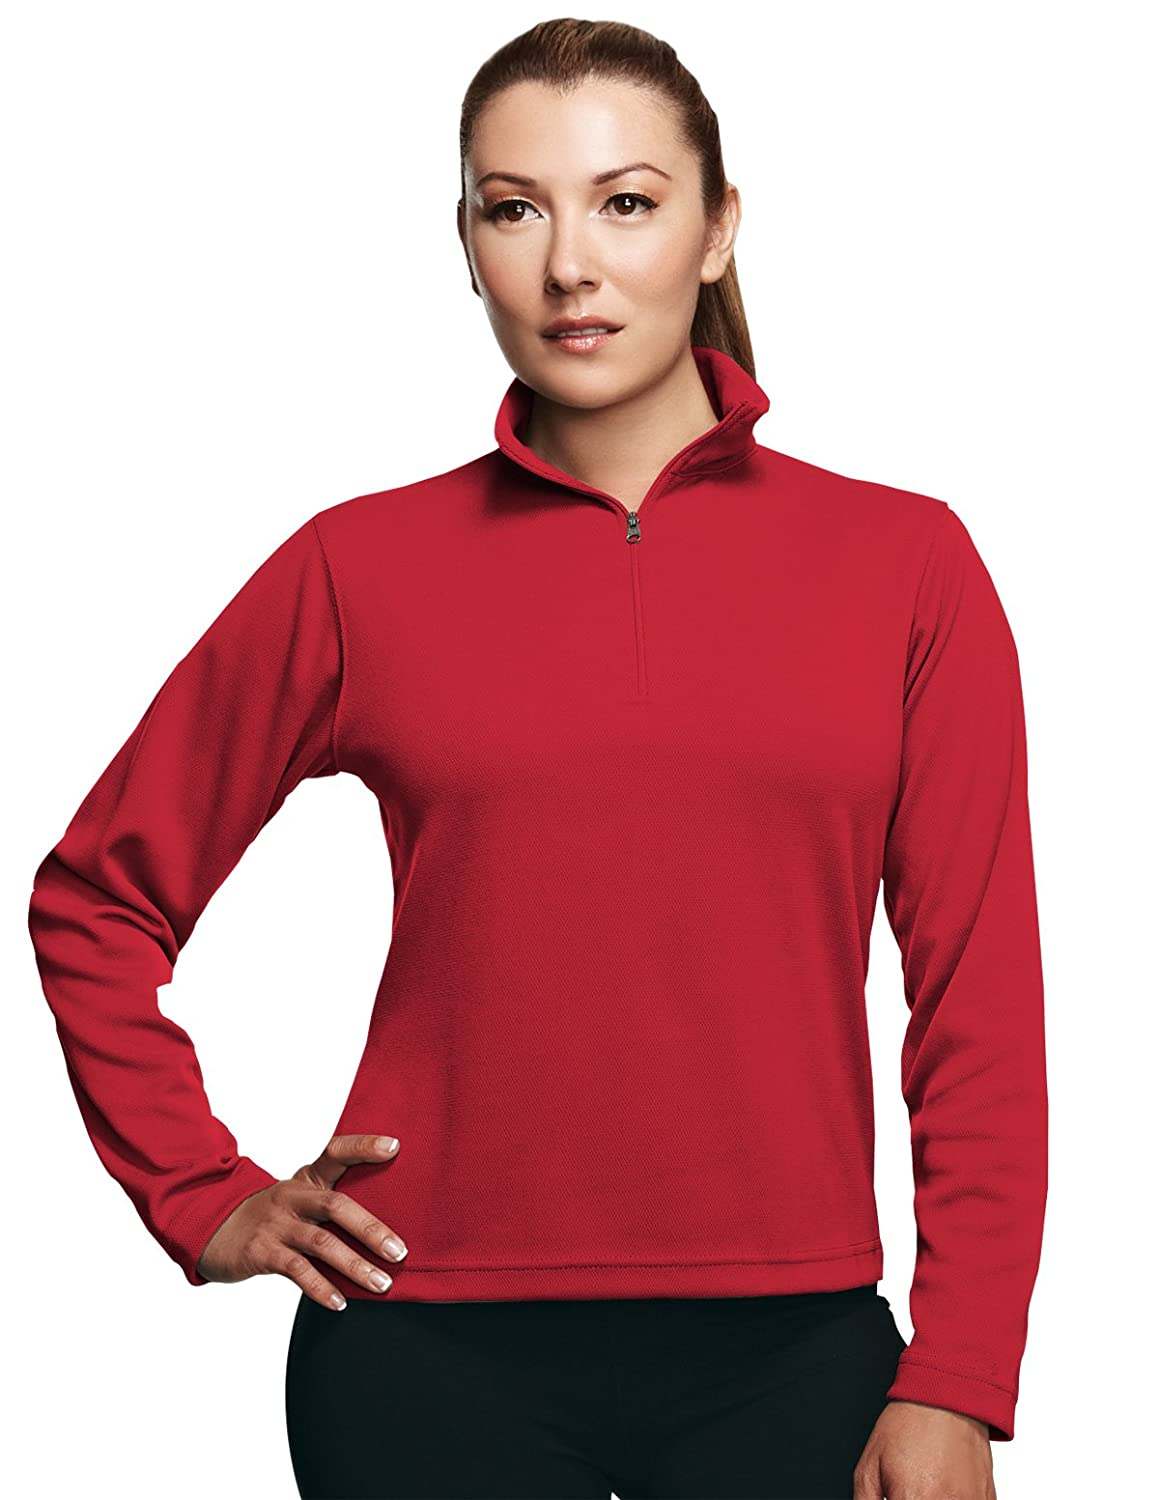 Tri Mountain Women's Performance Quarter Zip Pullover Shirt - 652 Mission TRM652